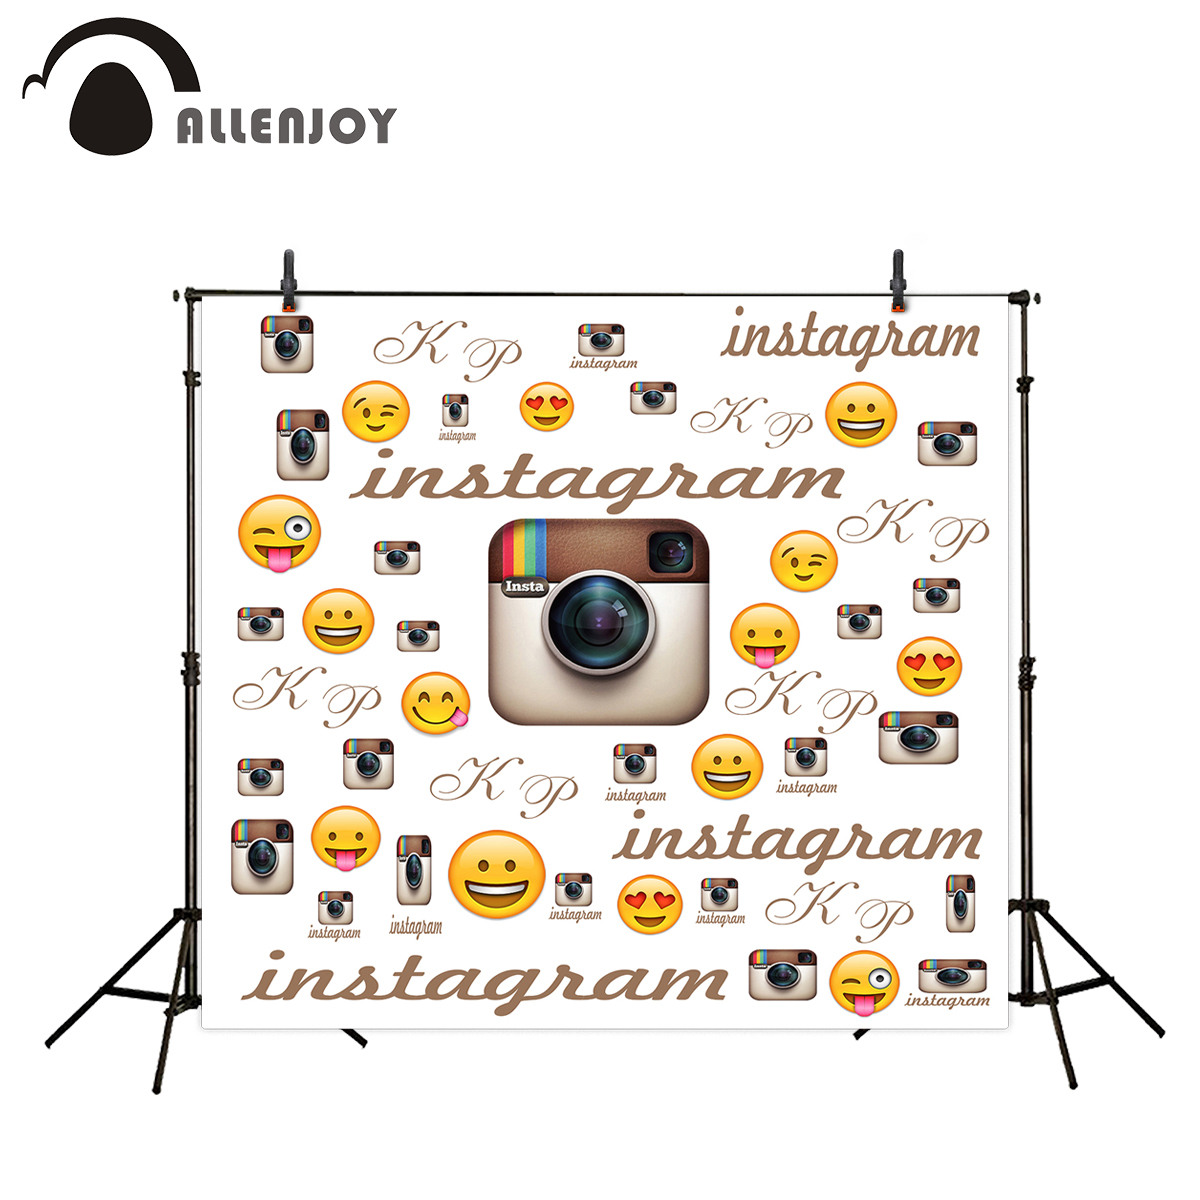 Allenjoy camera photography Party background instagram Social Network theme emoji camera Photophone Background for photo studio david silver the social network business plan